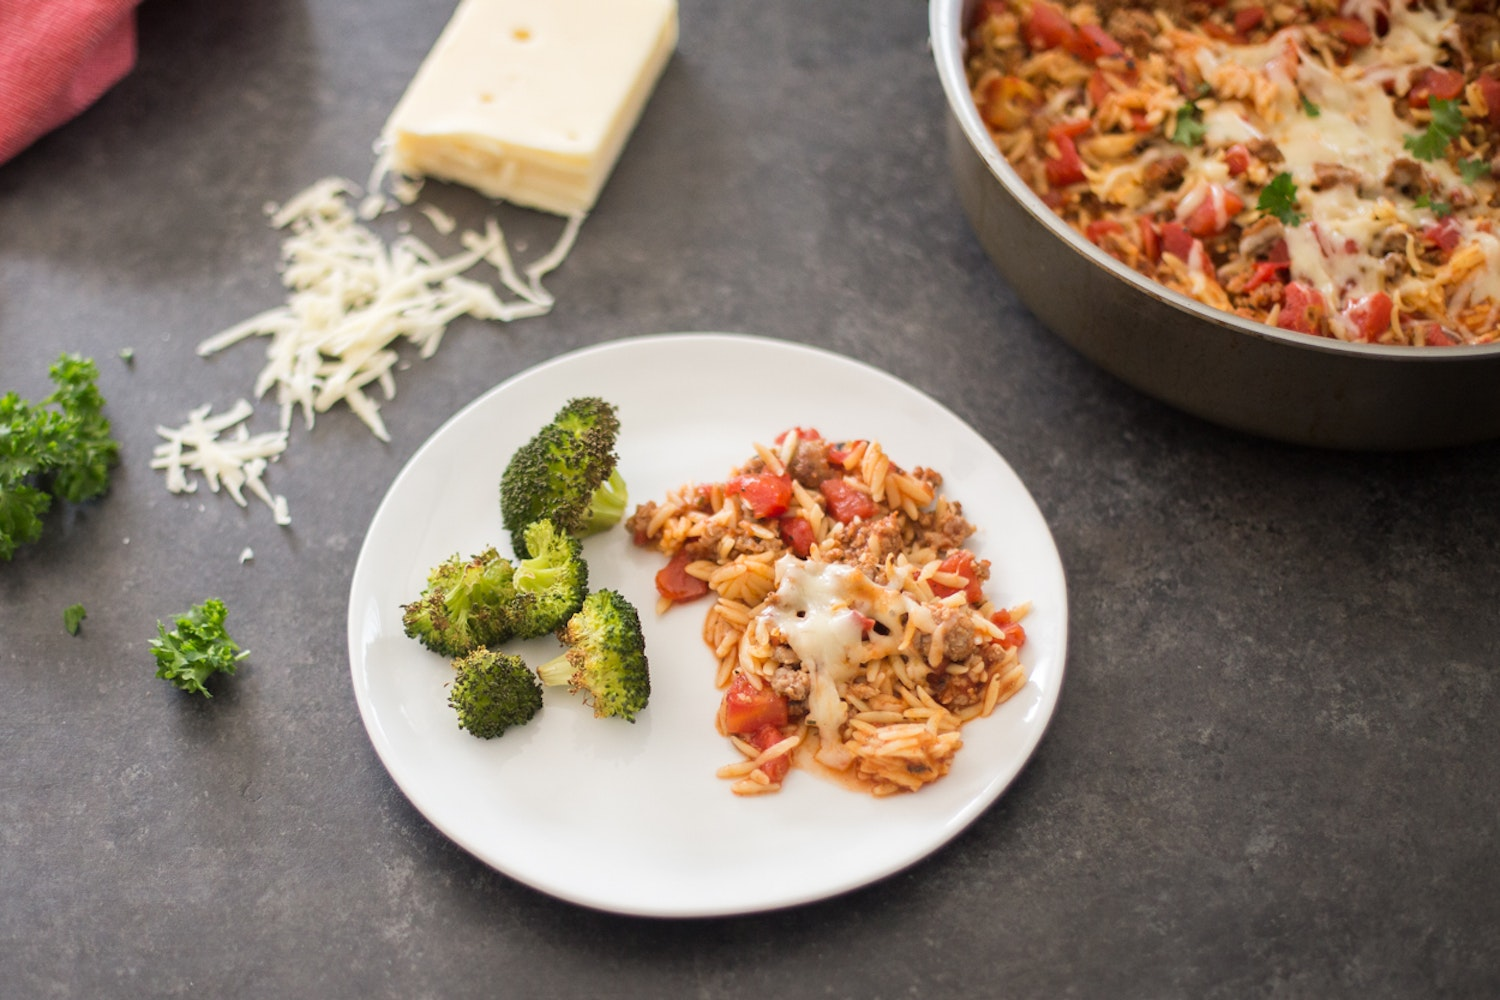 20190114 sausage and cheese baked orzo nm 3.jpg?ixlib=rails 2.1